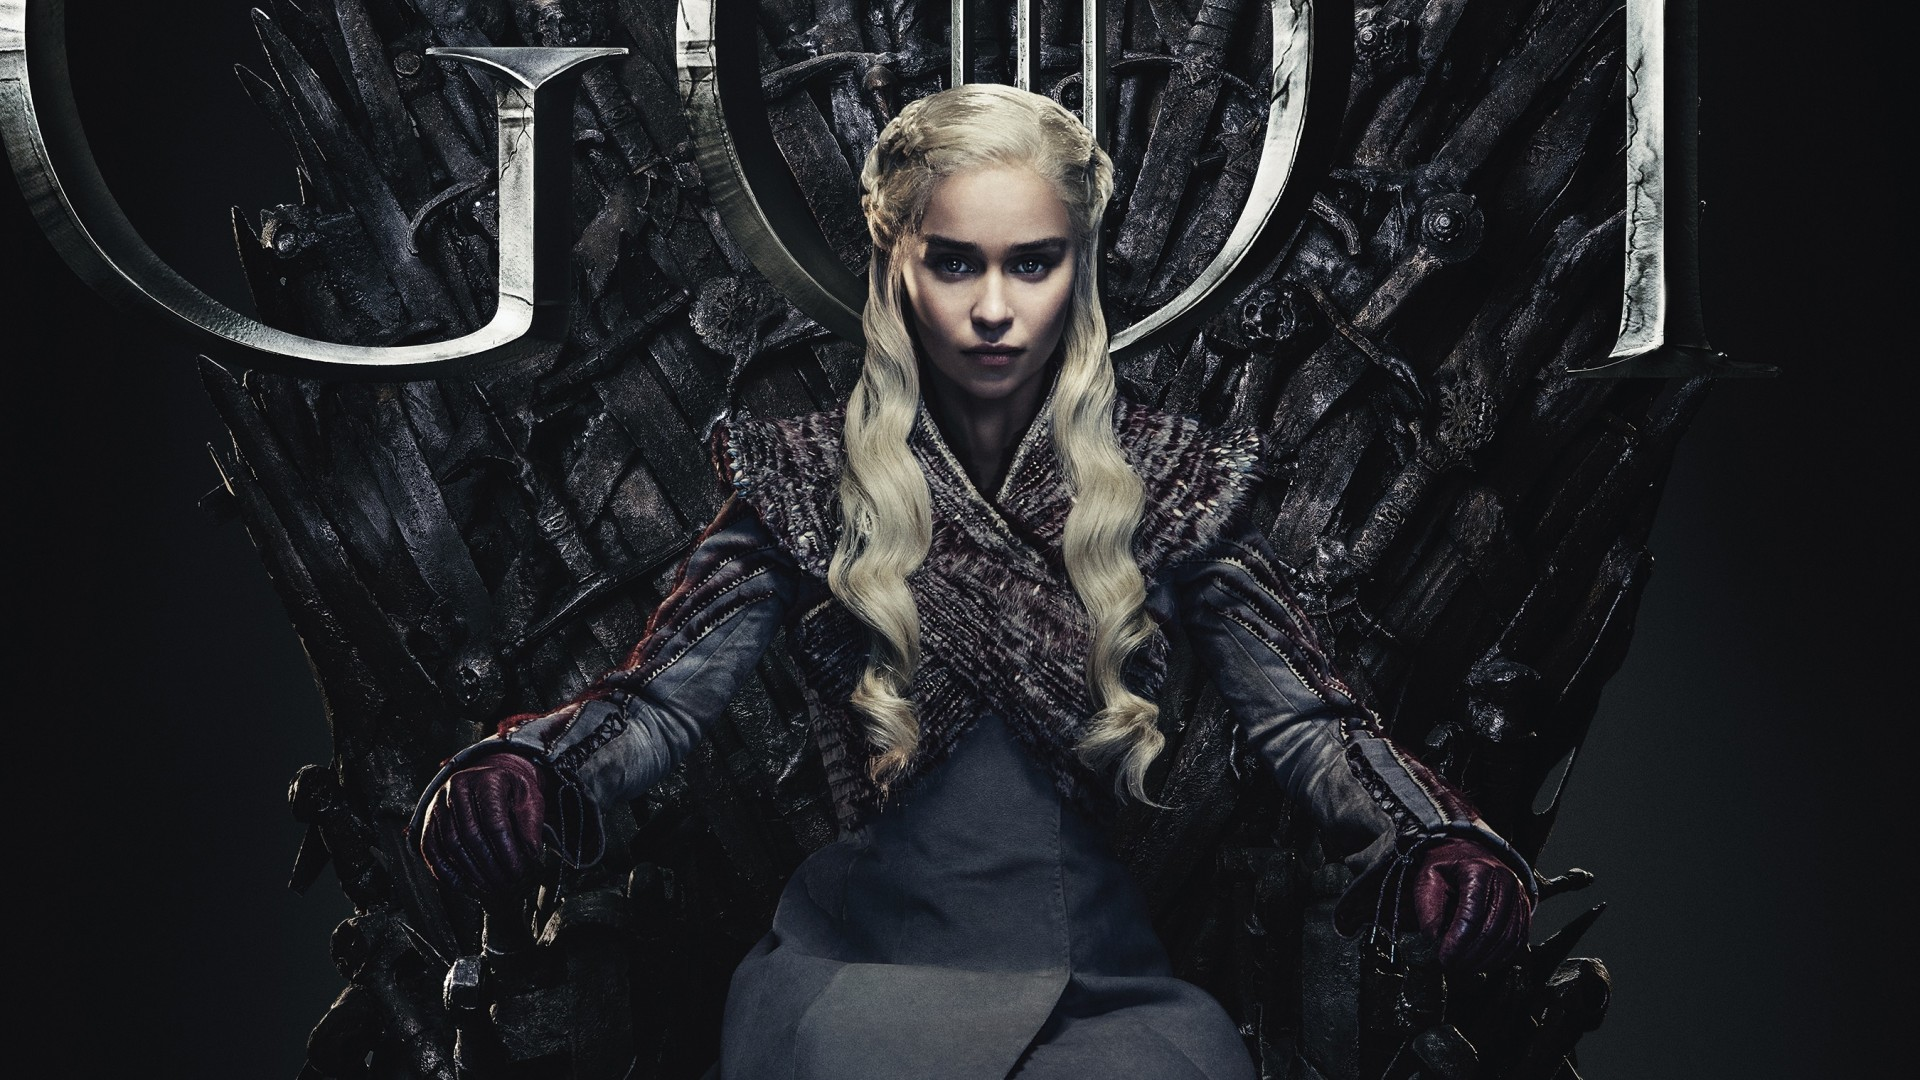 game-of-thrones-season-8-daenerys-targaryen-wallpaper